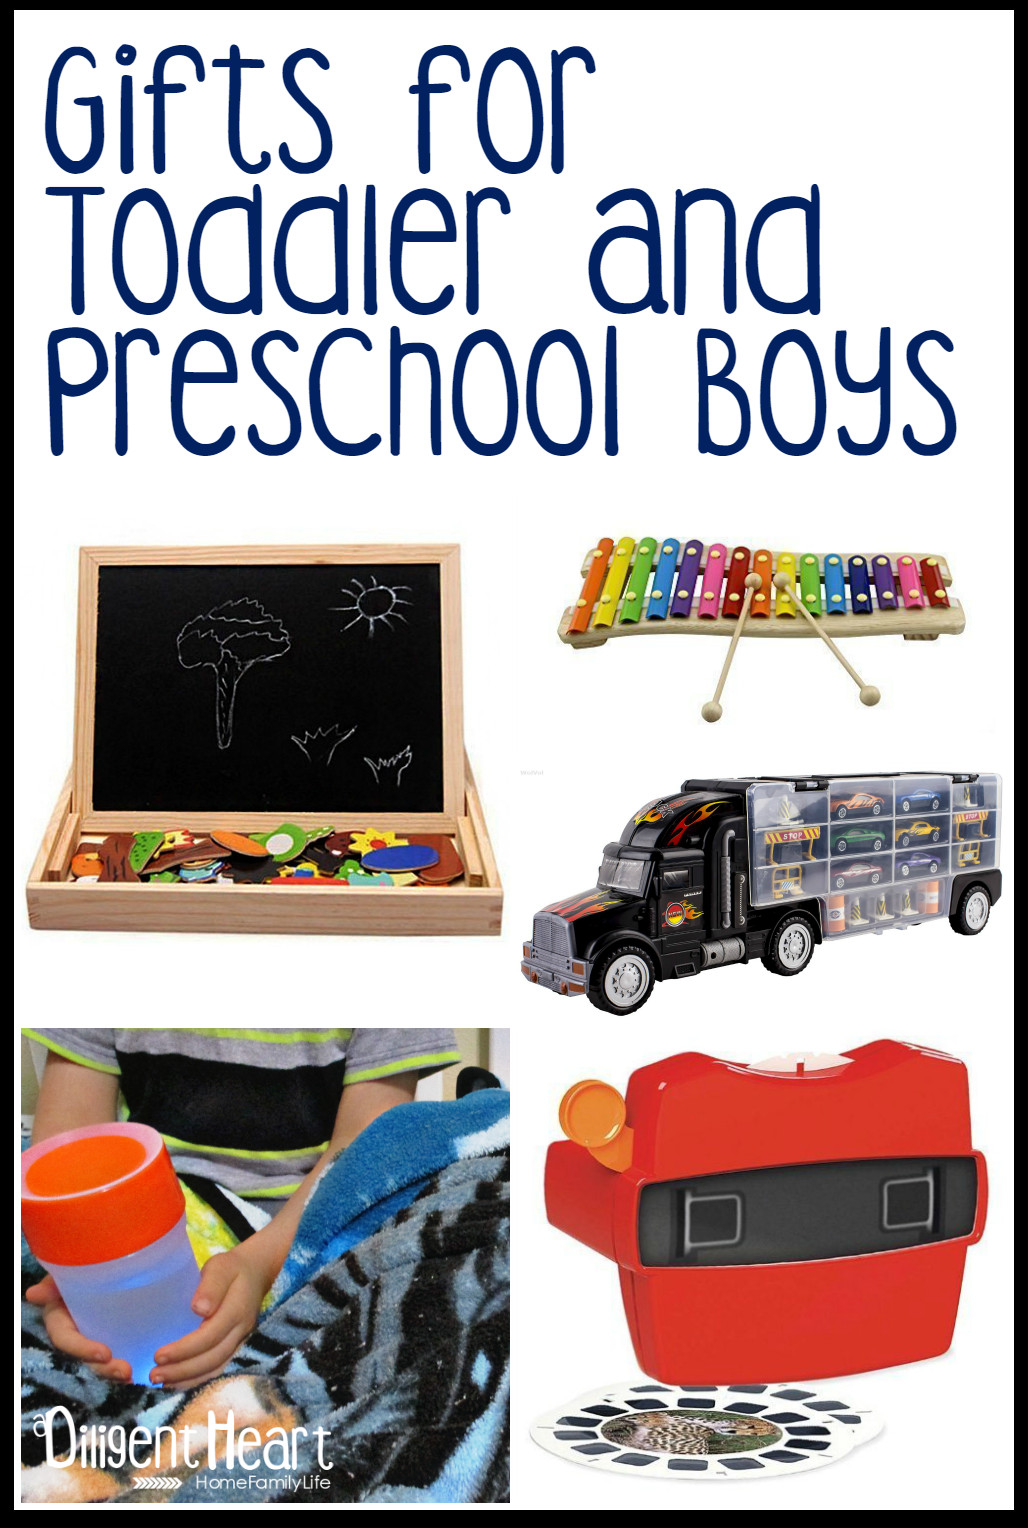 Toddler Gift Ideas For Boys  Gifts For Toddler and Preschool Boys